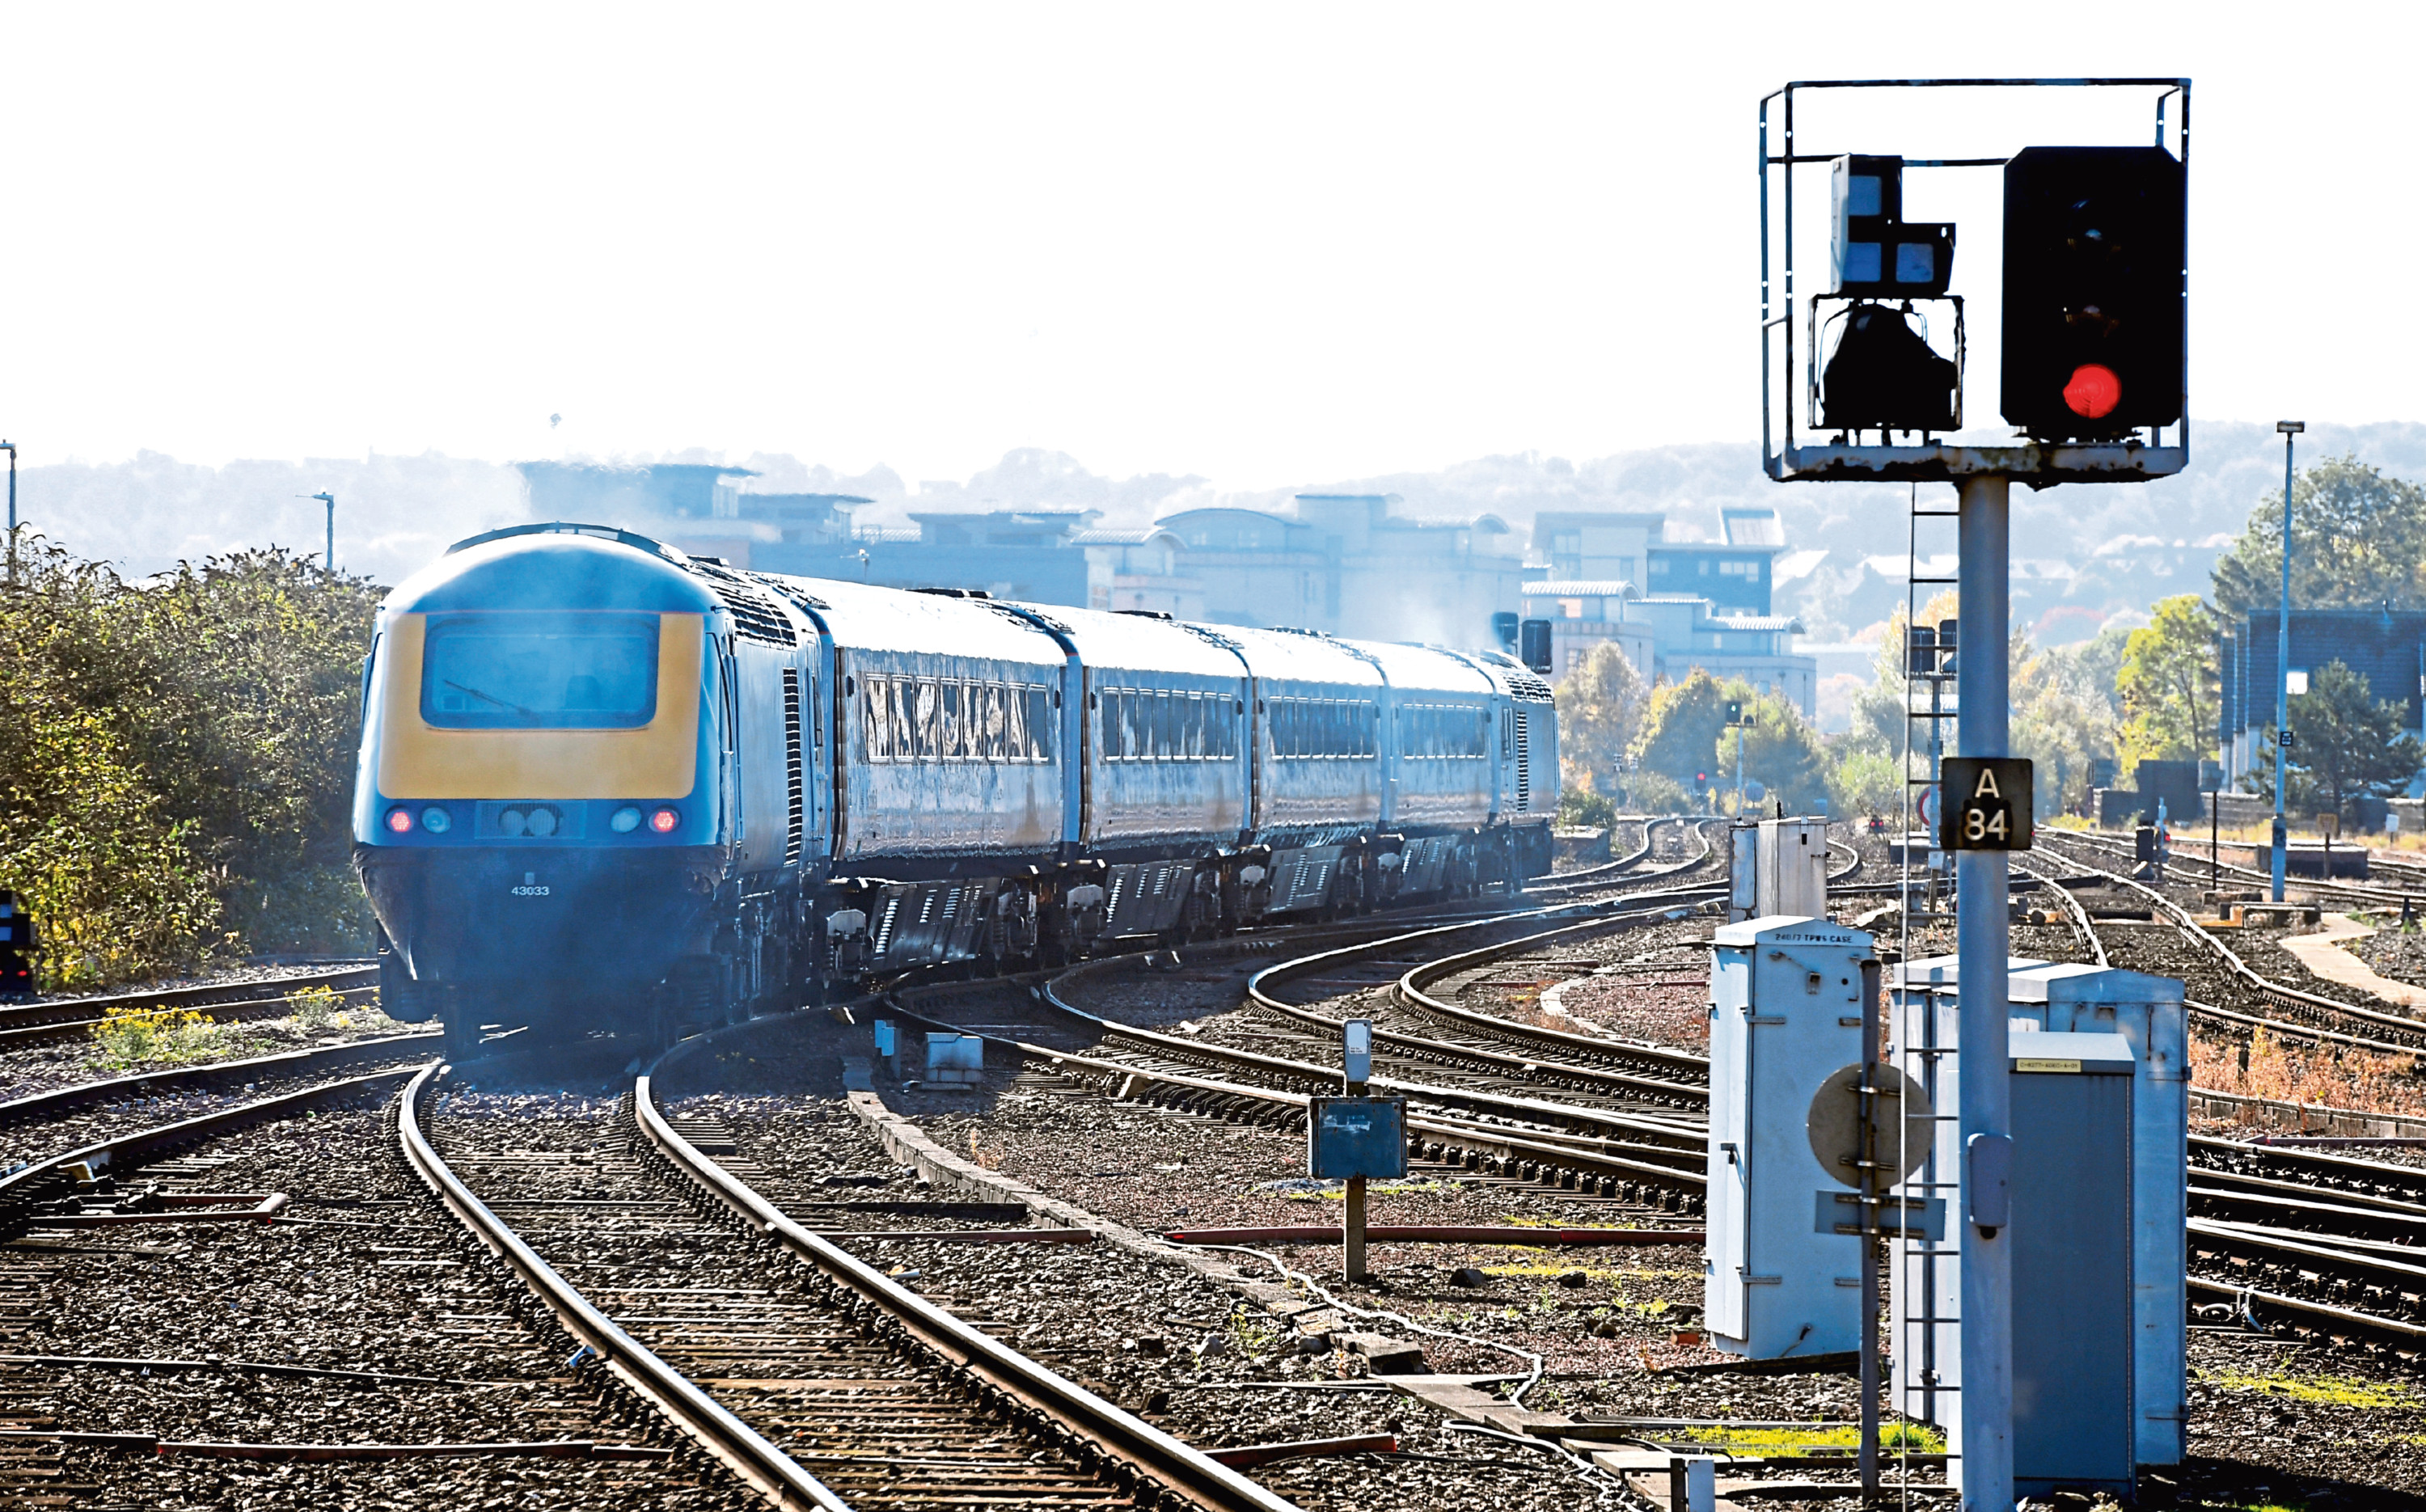 Passenger numbers in the north-east have dropped by more than 2 million in the last 5 years